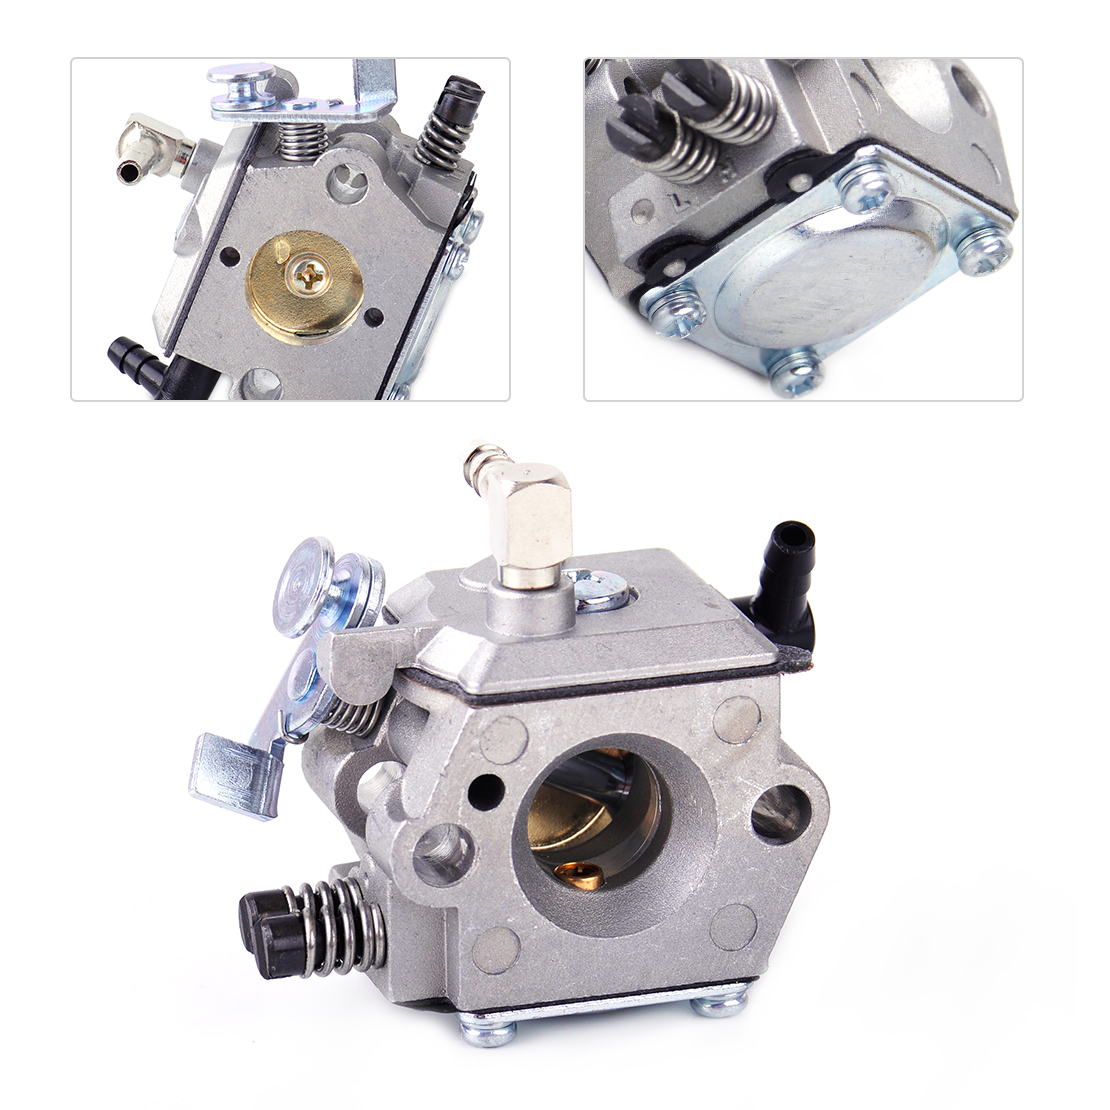 LETAOSK Carburetor Carb Fit For Tillotson HU-40D Stihl 028 028AV Super Chainsaw 11181200600 WT-16B